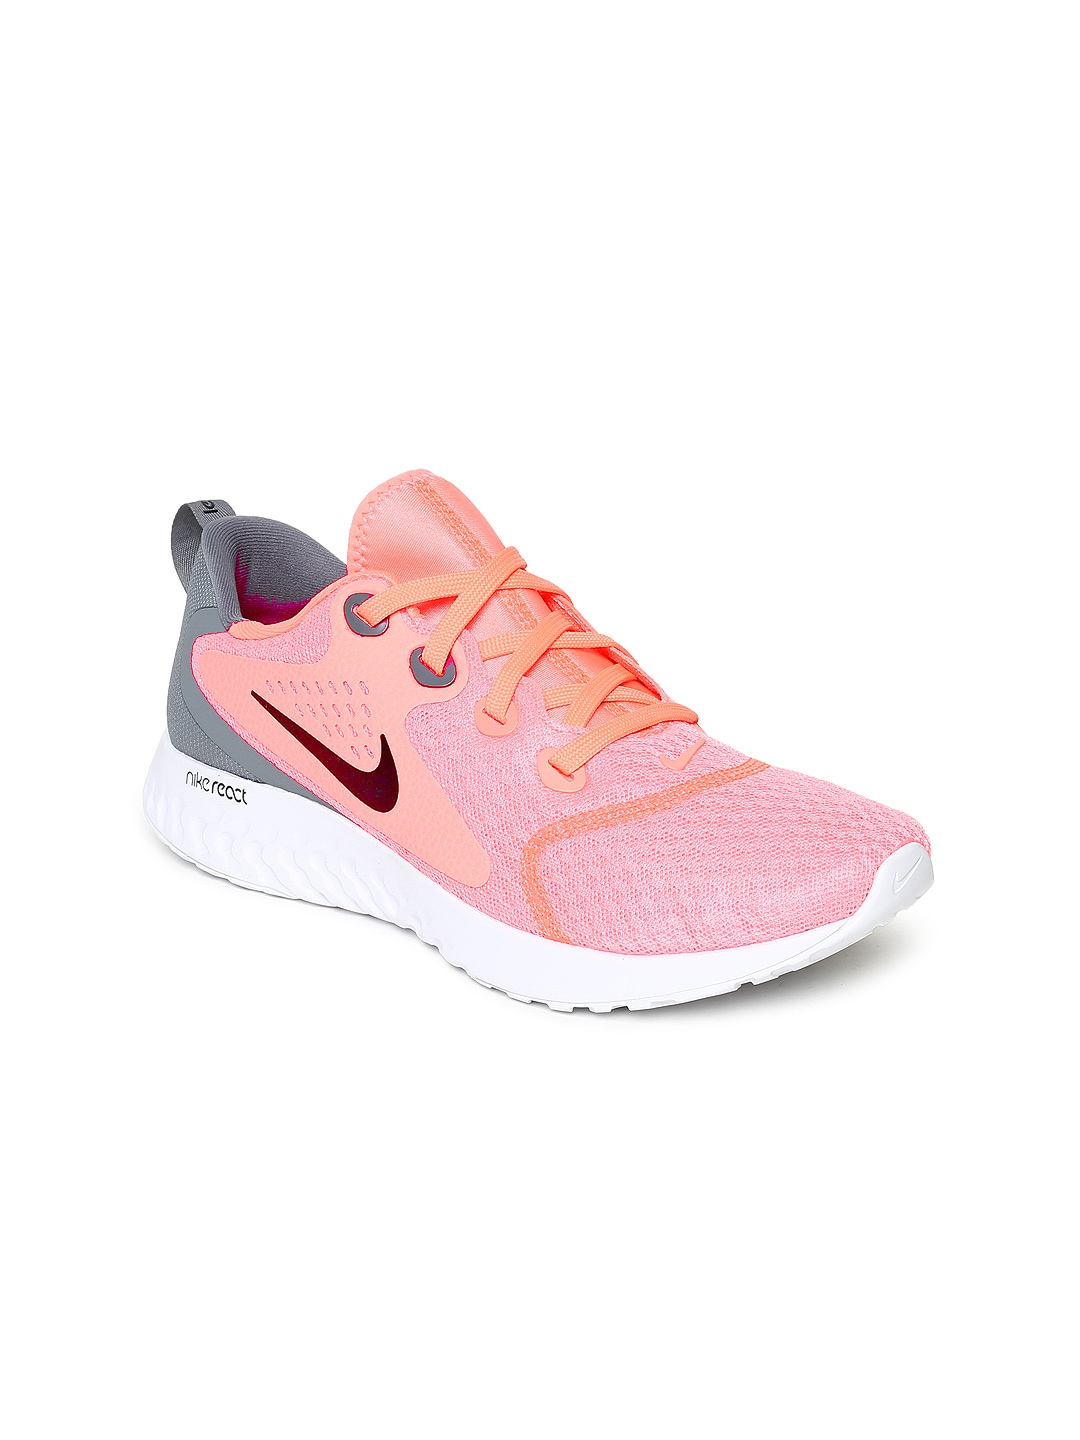 3be39fc44d296 Pink Shoes - Buy Pink Shoes Online in India